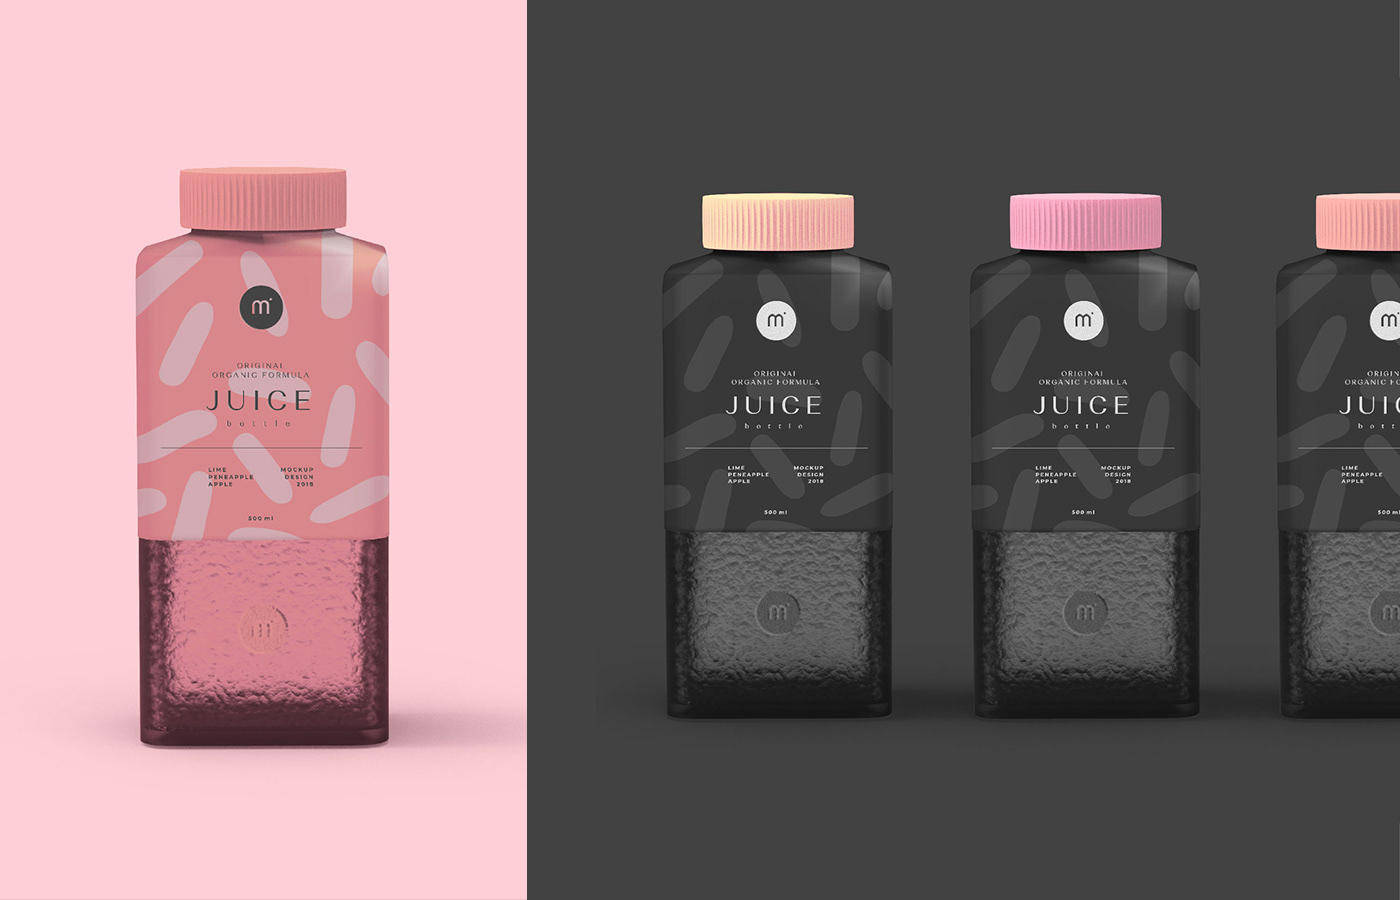 Free-Juice-Bottle-Mockup-PSD-2018